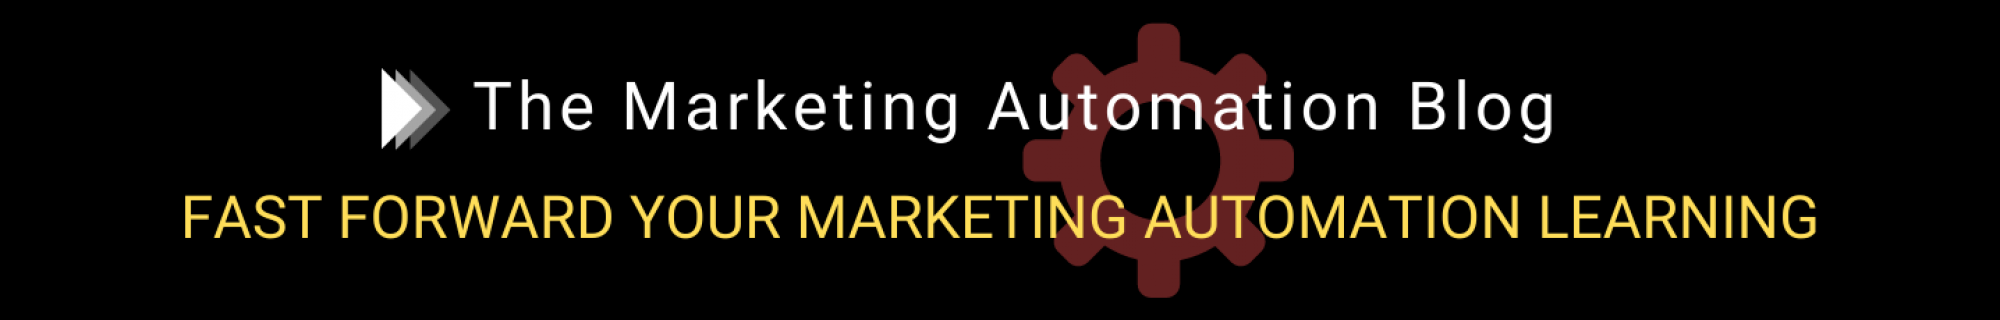 The Marketing Automation Blog